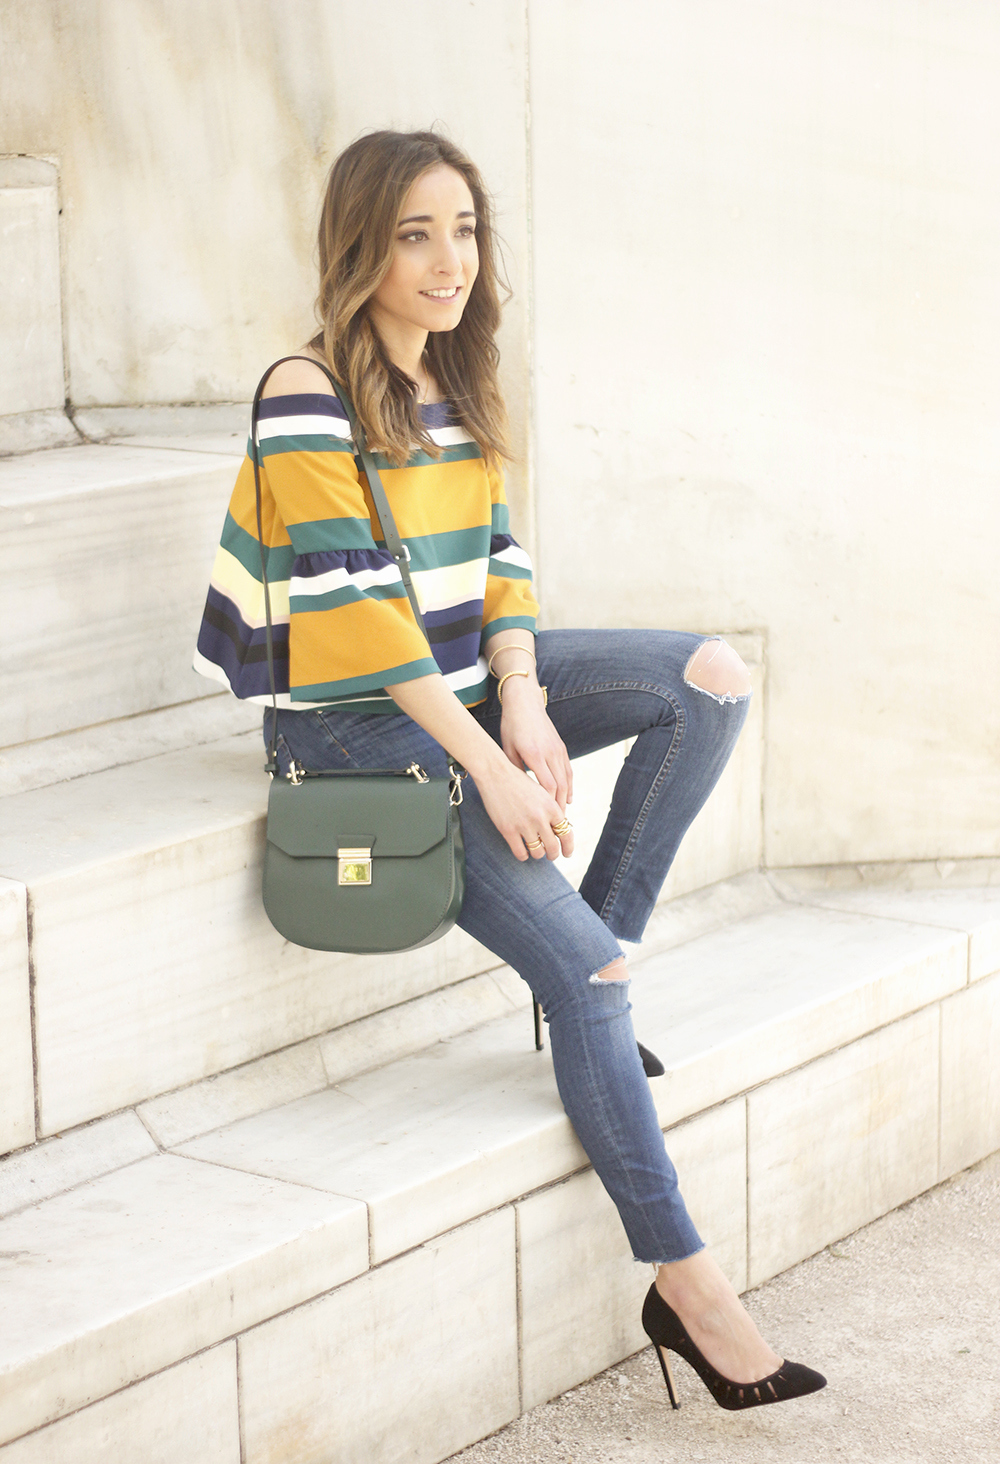 Off The Shoulder Top with stripes jeans heels accessories bag aristocrazy13